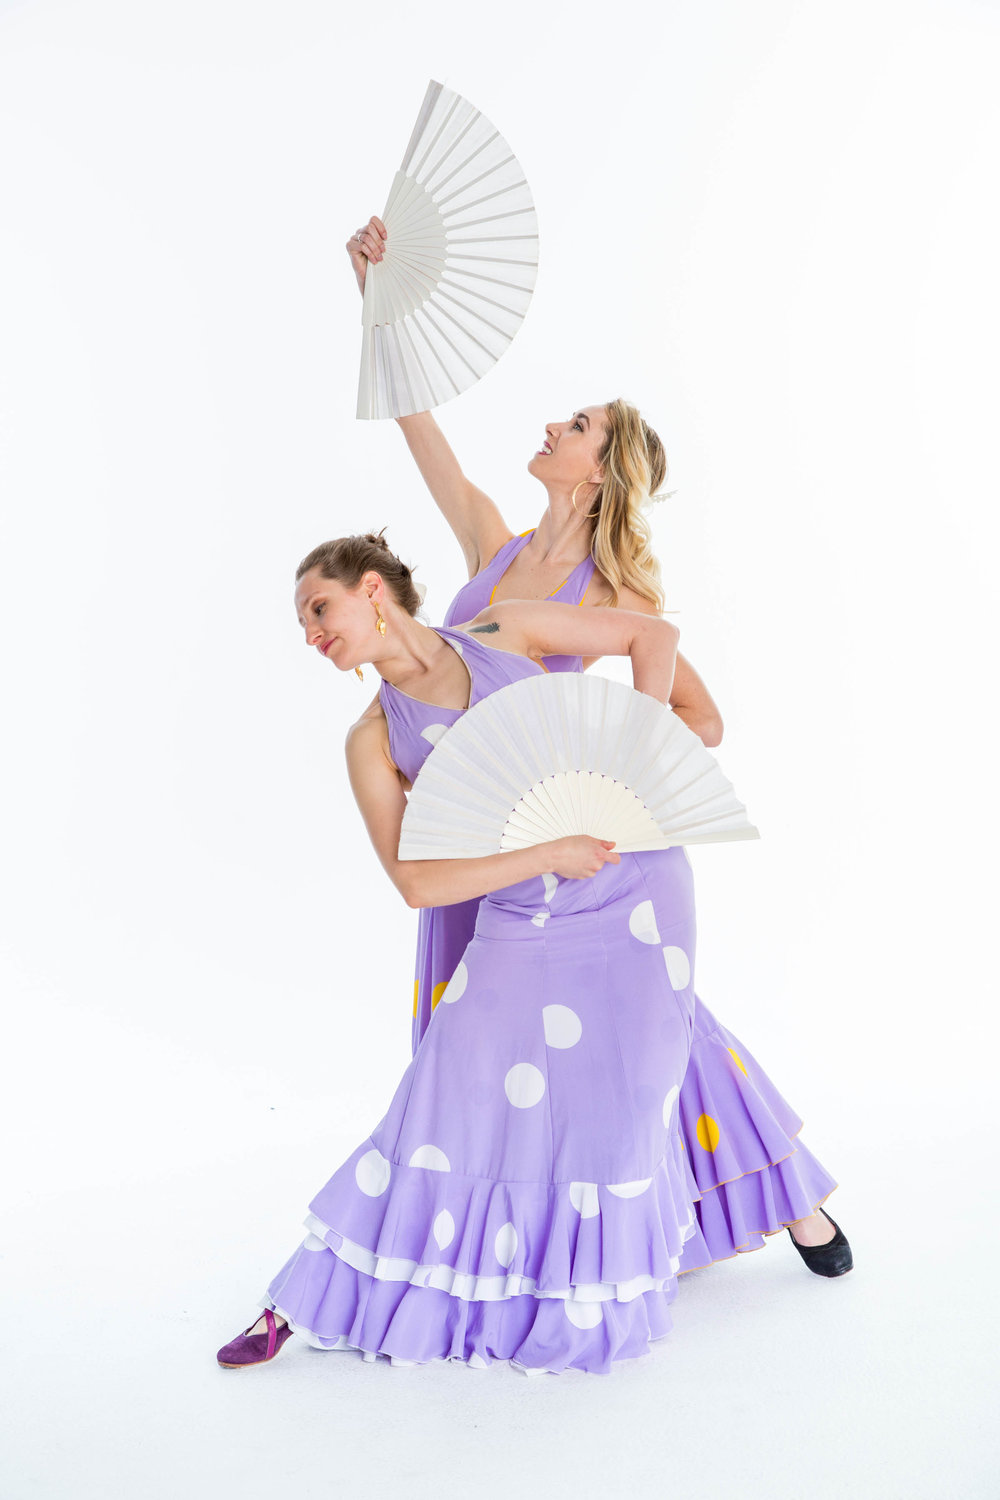 Zorongo Flamenco@ the State Fair  - Aug. 29th-31st from 3:30-6:30 PMSept. 1st-3rd from 10:00 AM-1:00 PM (I will personally be performing on Sept. 1st & 2nd!)At the West End Market of the State FairCome and enjoy the Zorongo Flamenco Majas perform at the Arts A'fair stages at the State Fair! Every year, Zorongo joins Arts A'fair to bring you a selection of traditional Flamenco pieces. Other groups will also perform throughout the State Fair. Past companies have included Children's Theater Company, COLLIDE Theatrical Dance Company, Interact Theater Company, Open Eye Figure Theater, amd more!